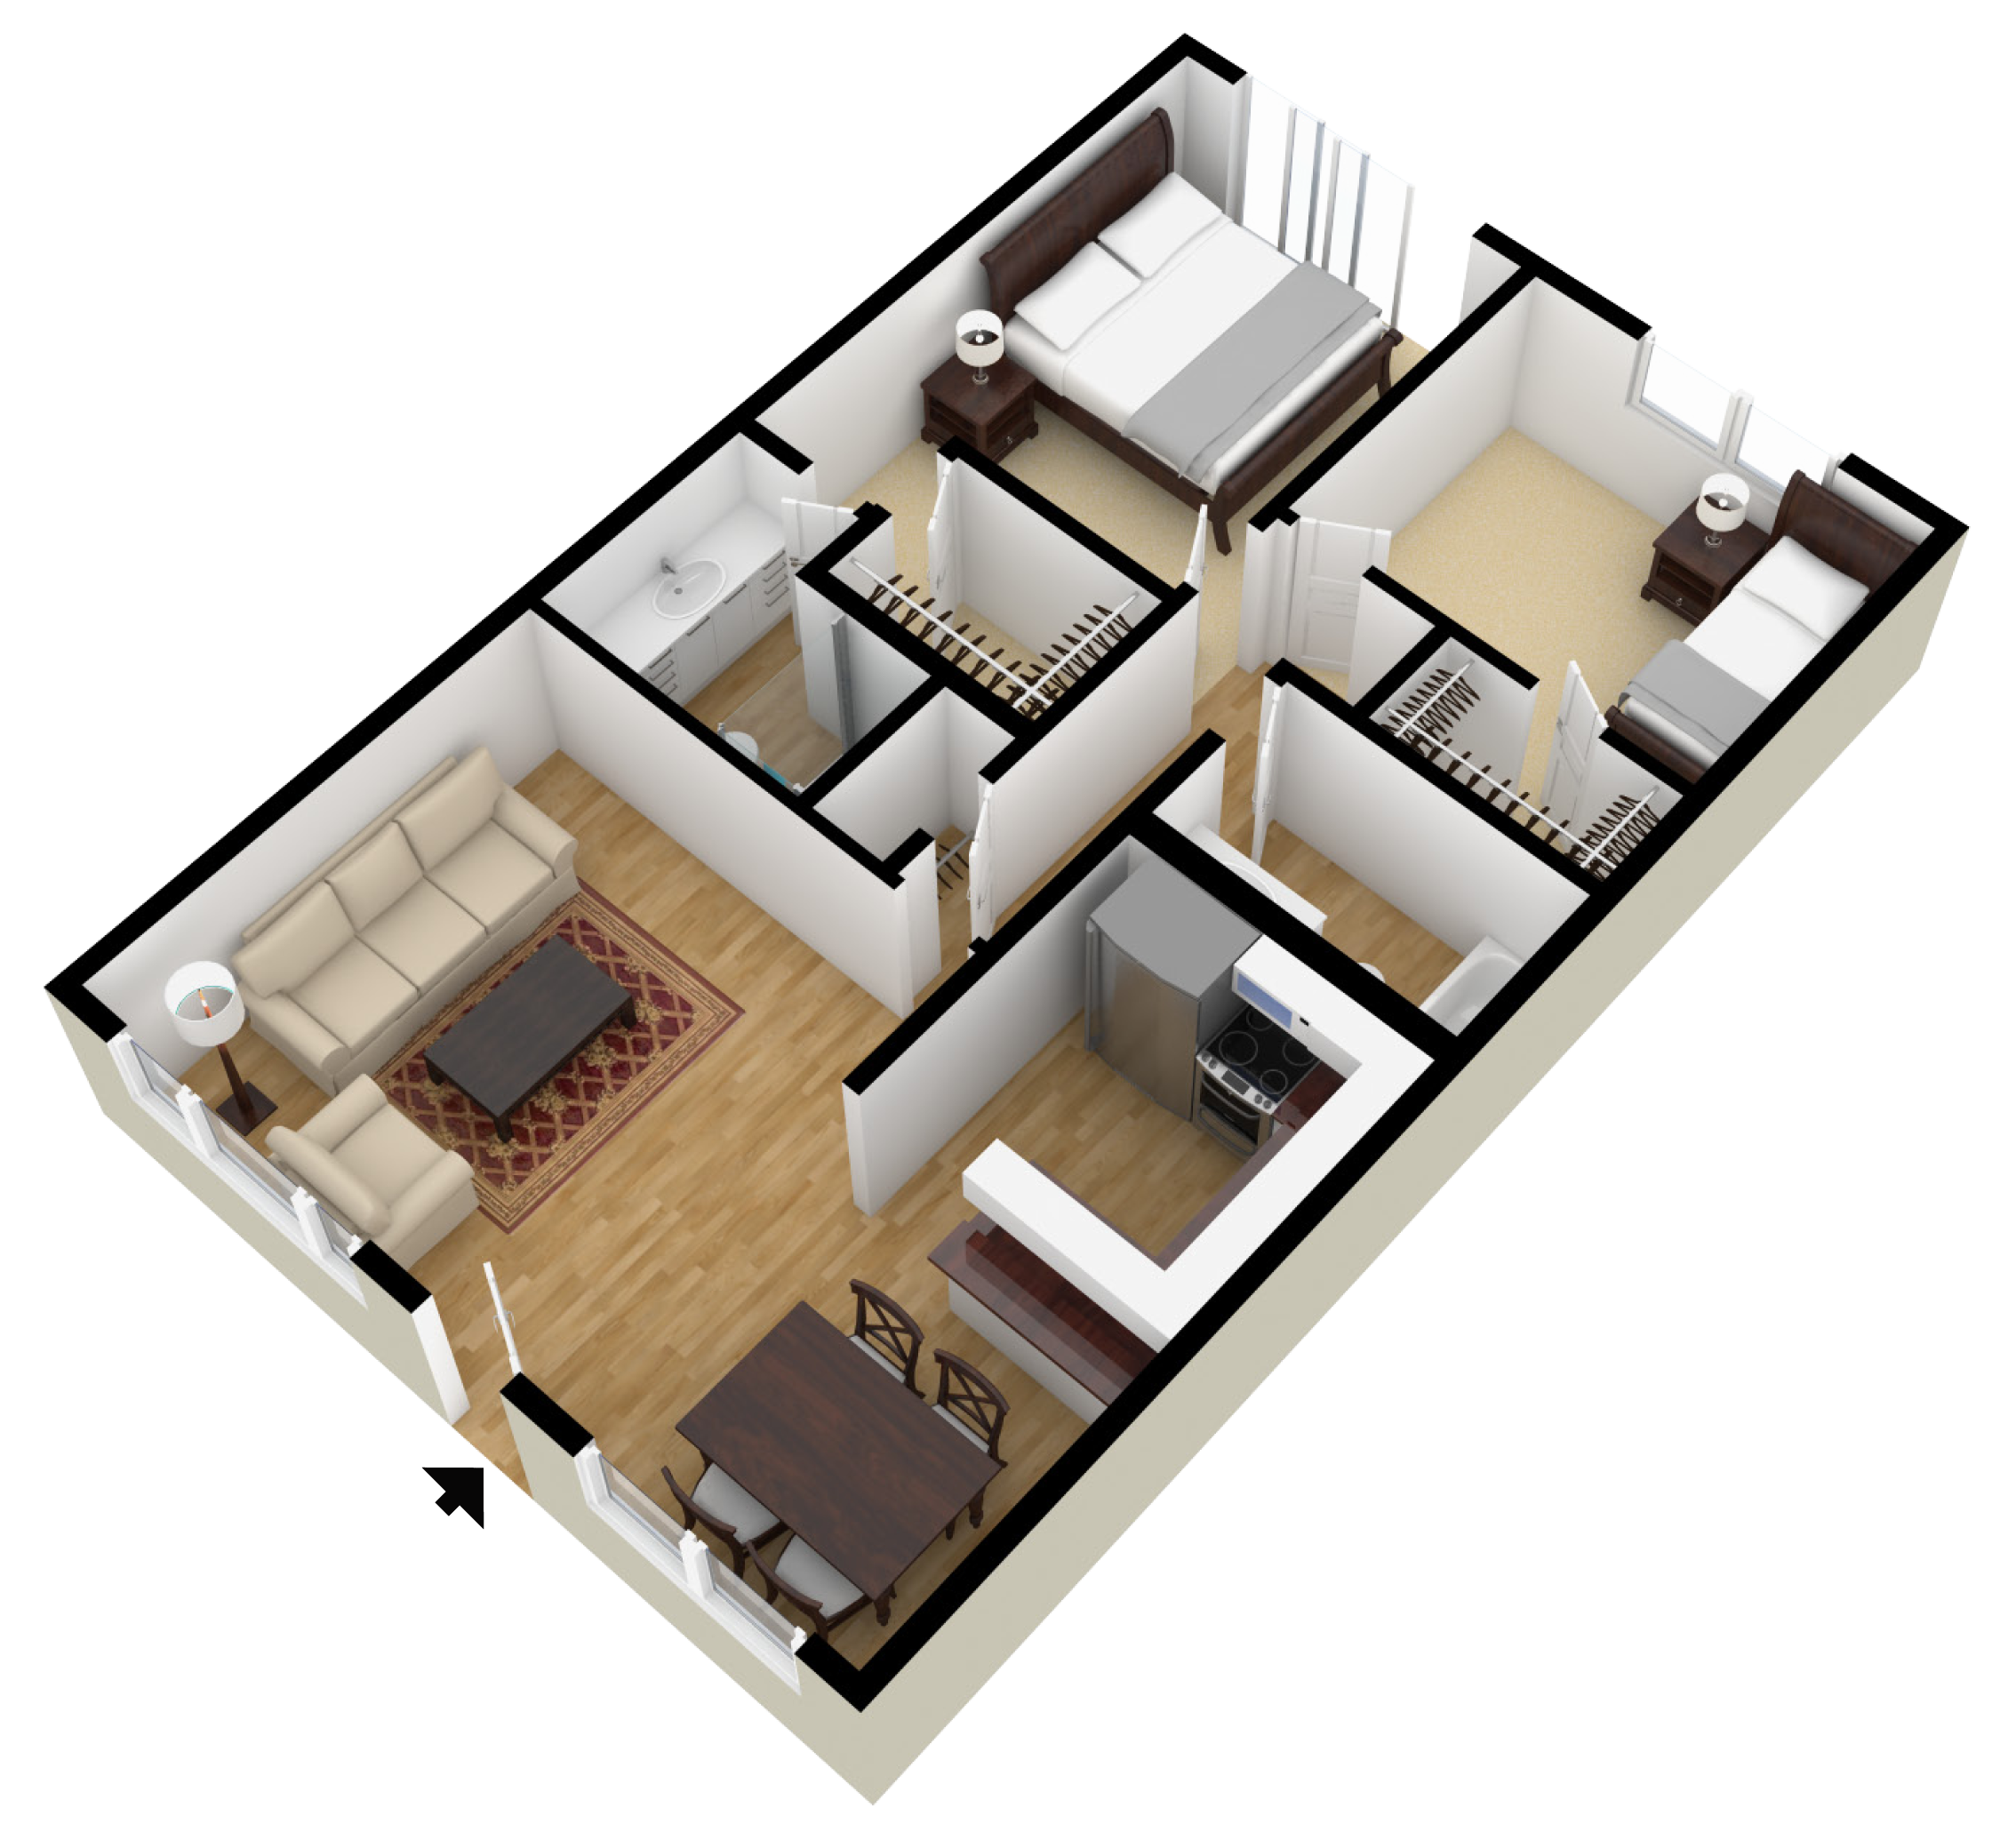 Small Galley Kitchen Floor Plans: This Is Similar To The Apartment Cambria Lives In. However